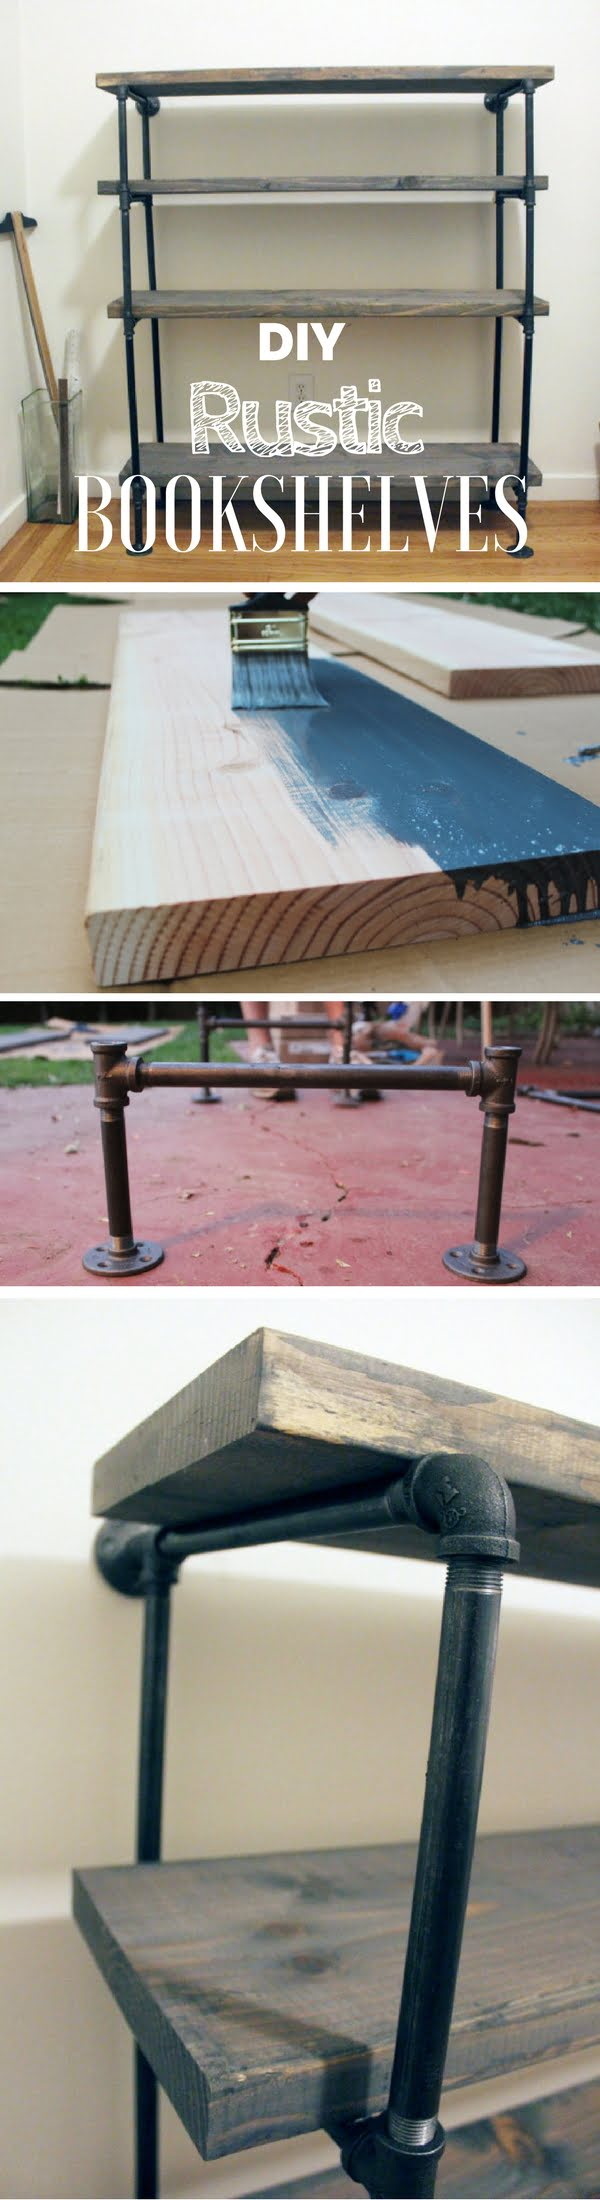 22 Easy DIY Bookshelf Ideas You Can Build at Home - Check out how to build these DIY industrial rustic shelves at home